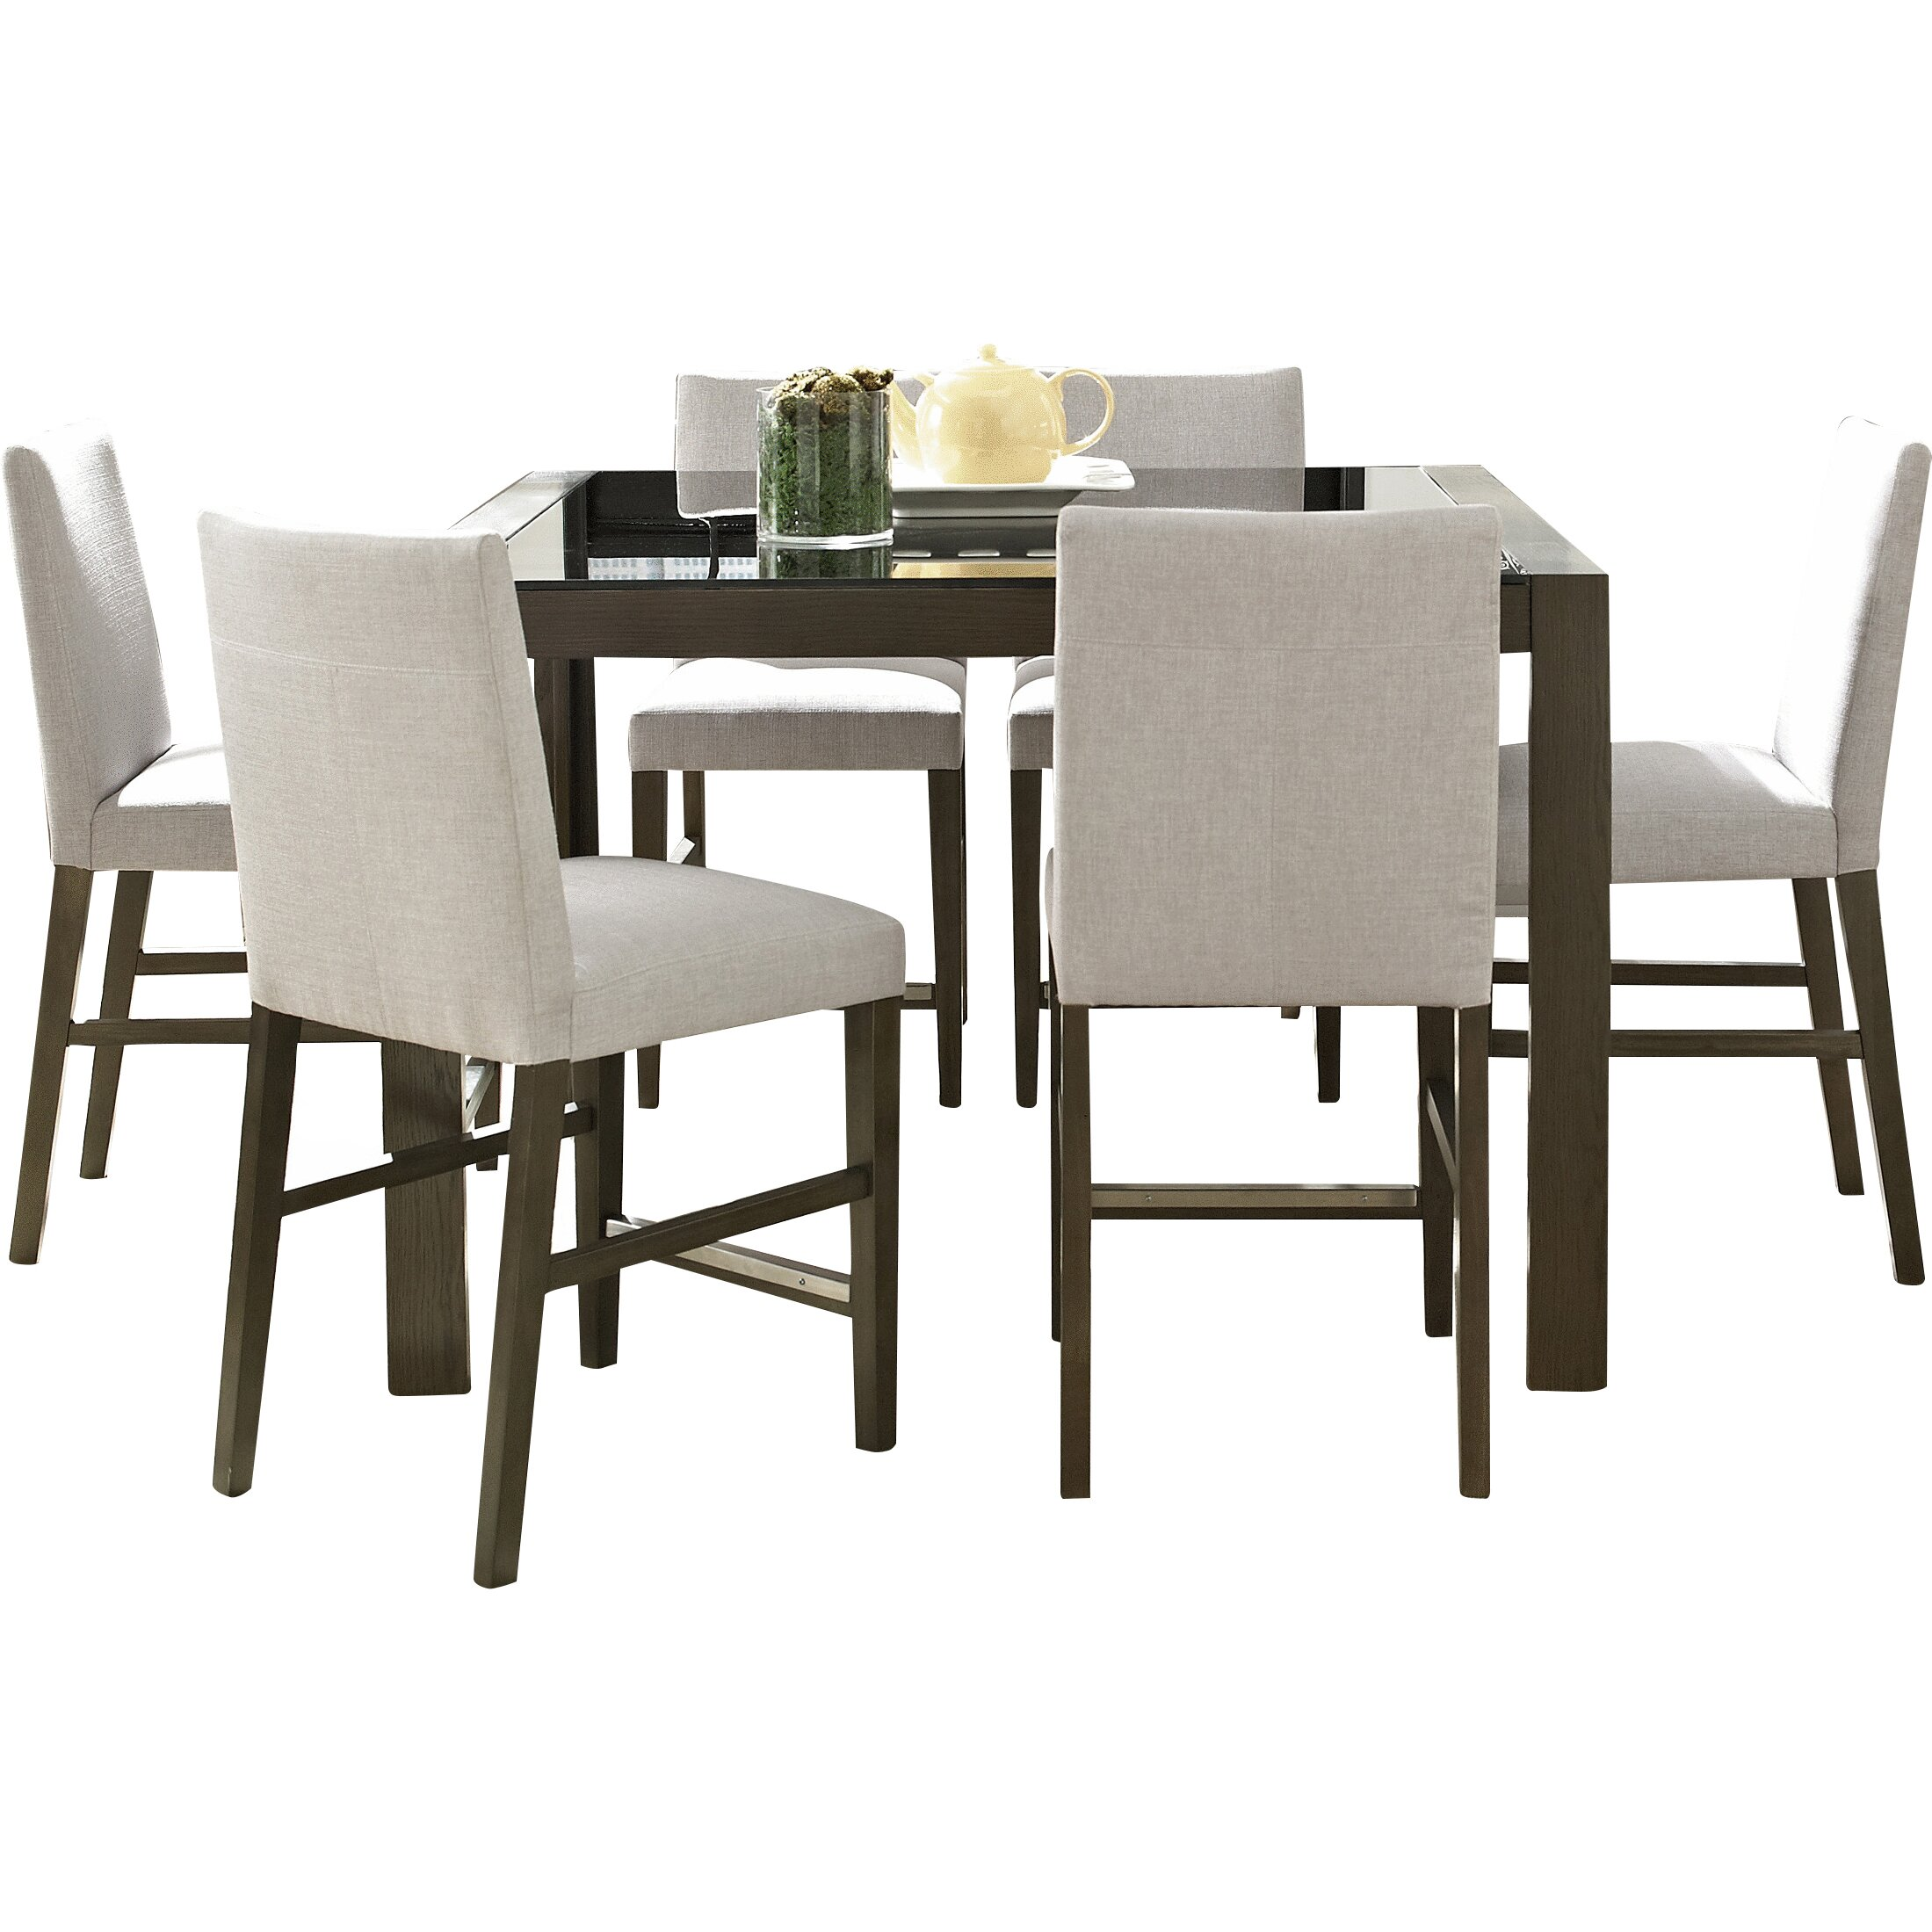 7 Piece Counter Height Dining Room Sets: Brayden Studio North Stoke 7 Piece Counter Height Dining